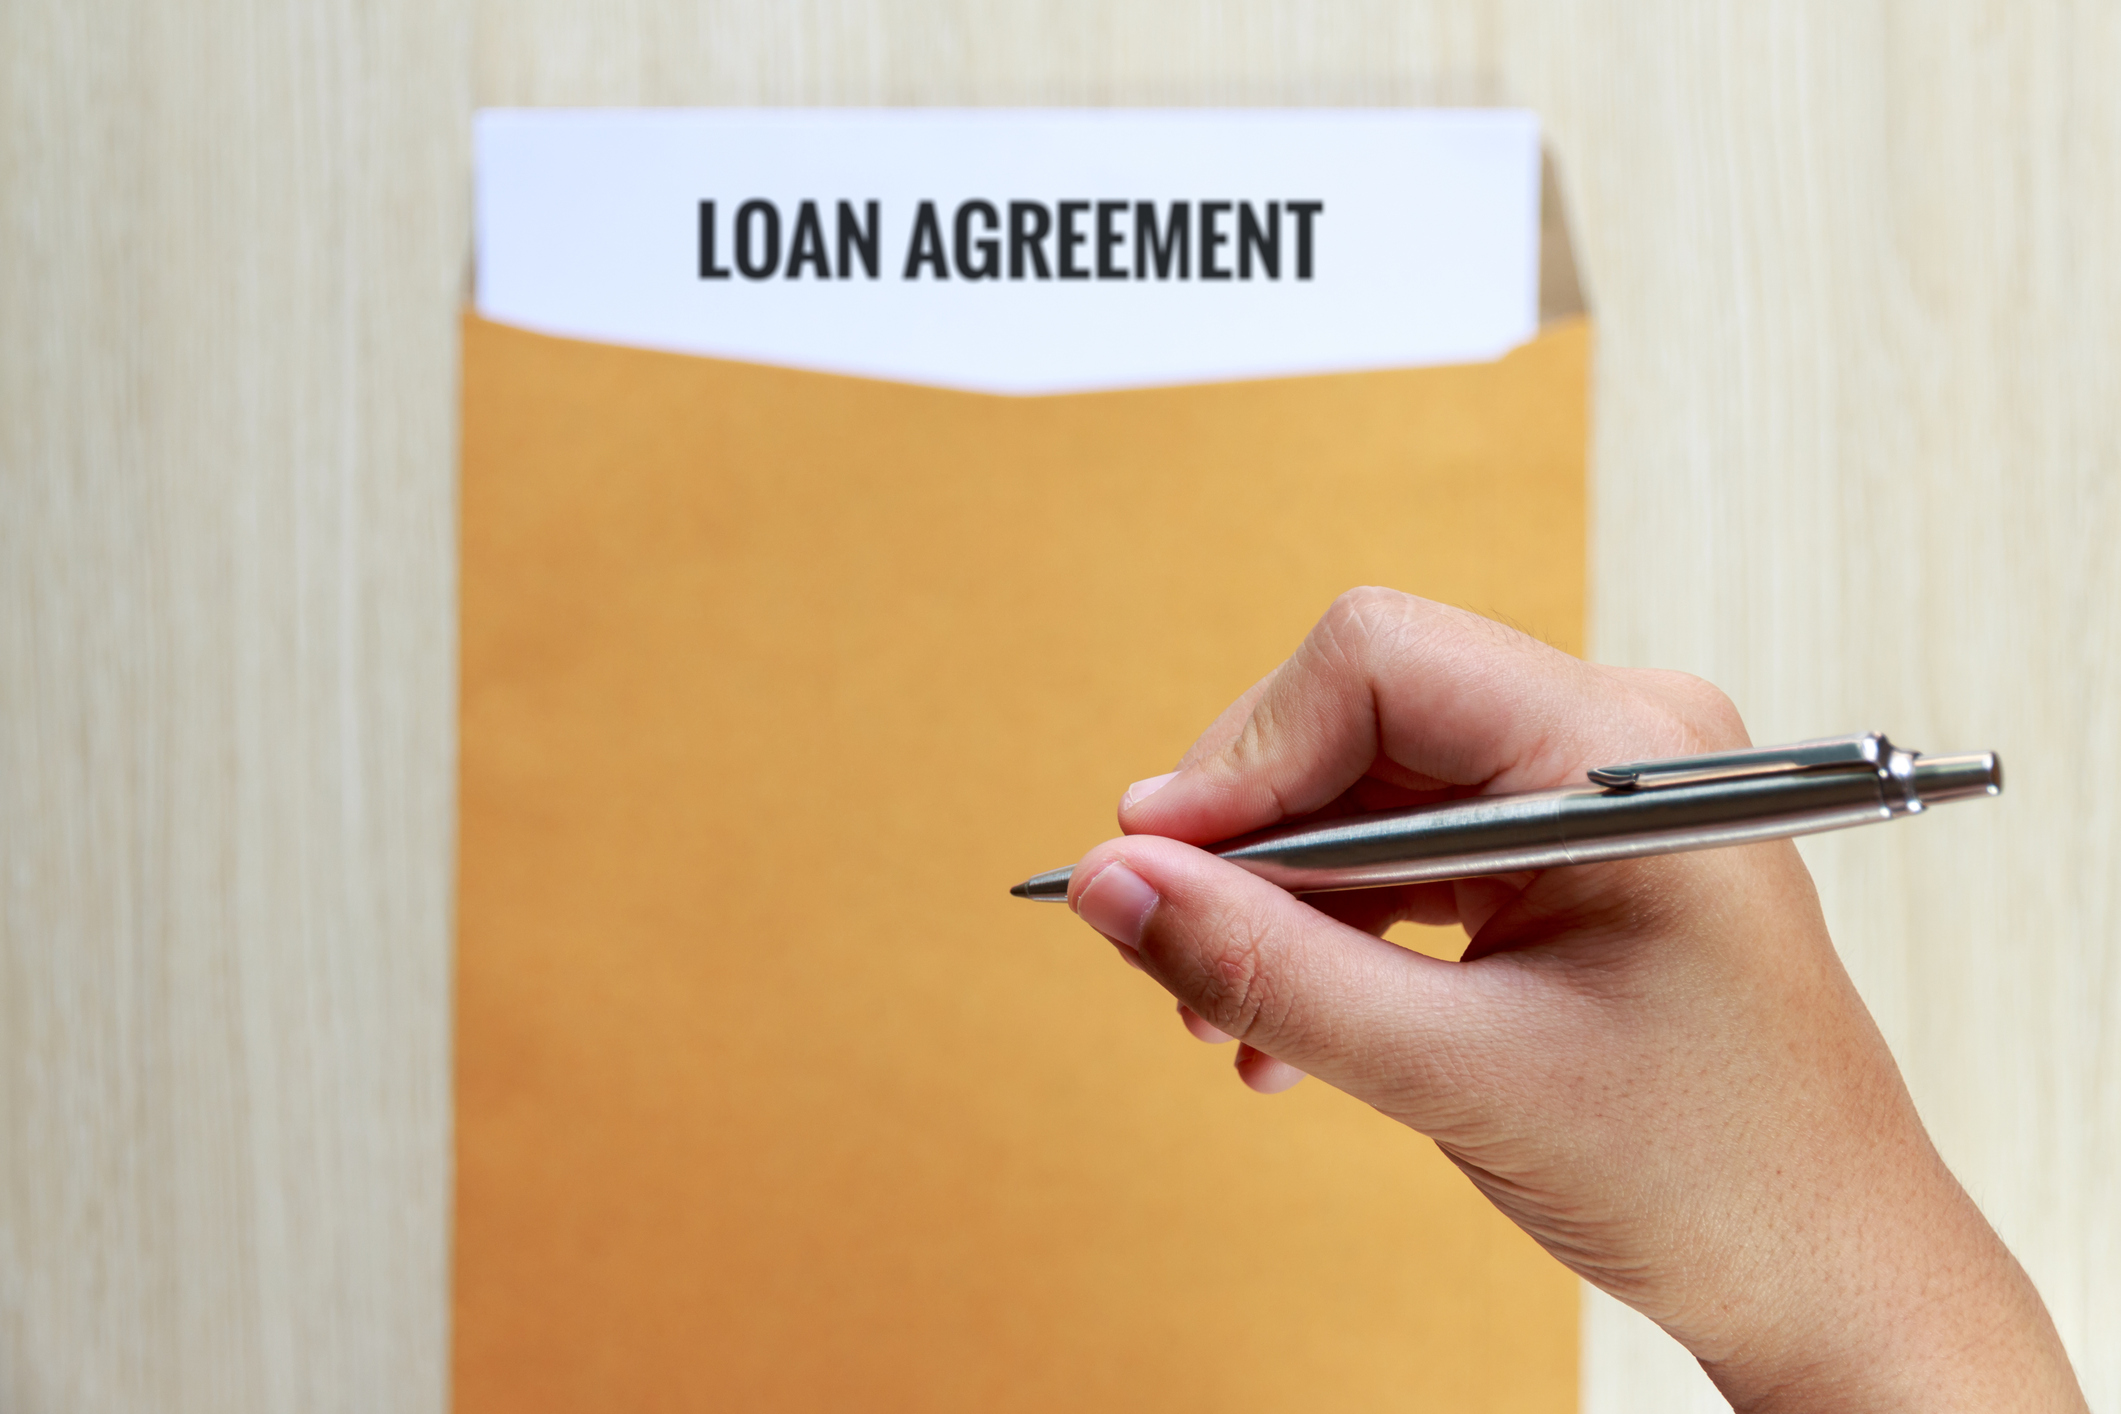 Hand Holding Pen Over Loan Agreement